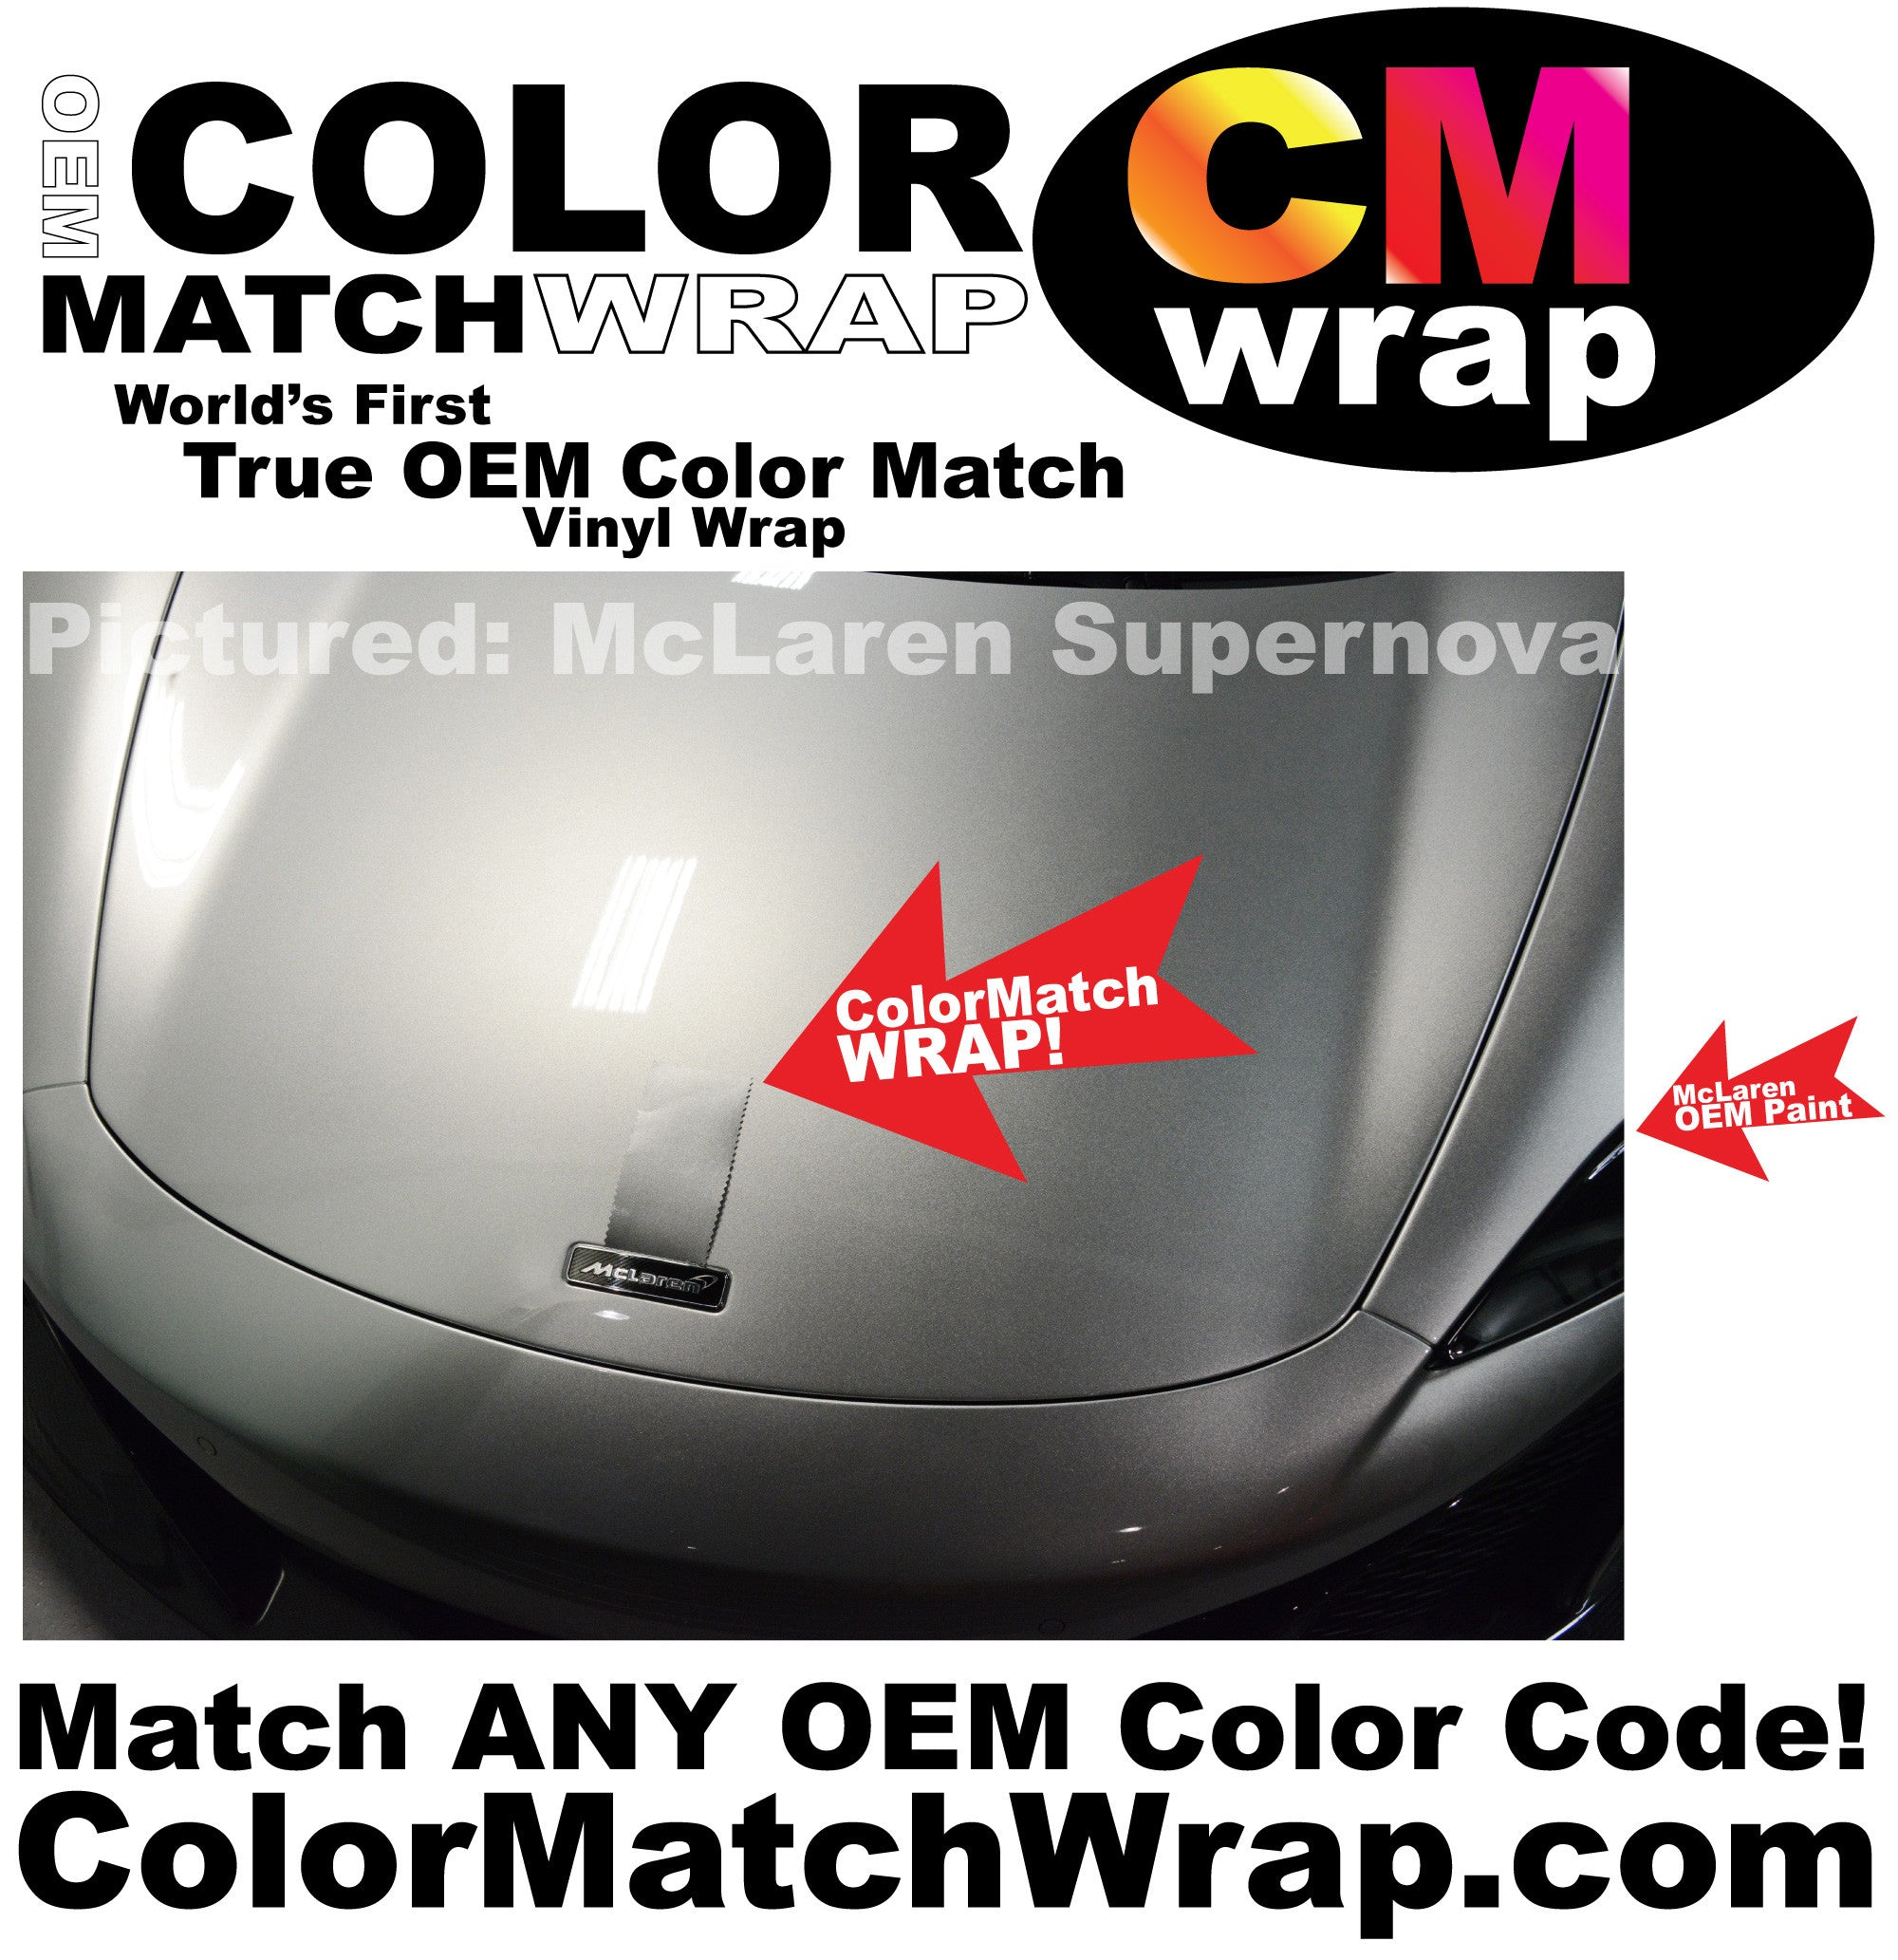 Color Match Wrap, McLaren Supernova Silver Hood Color Matching Vinyl Wrap!